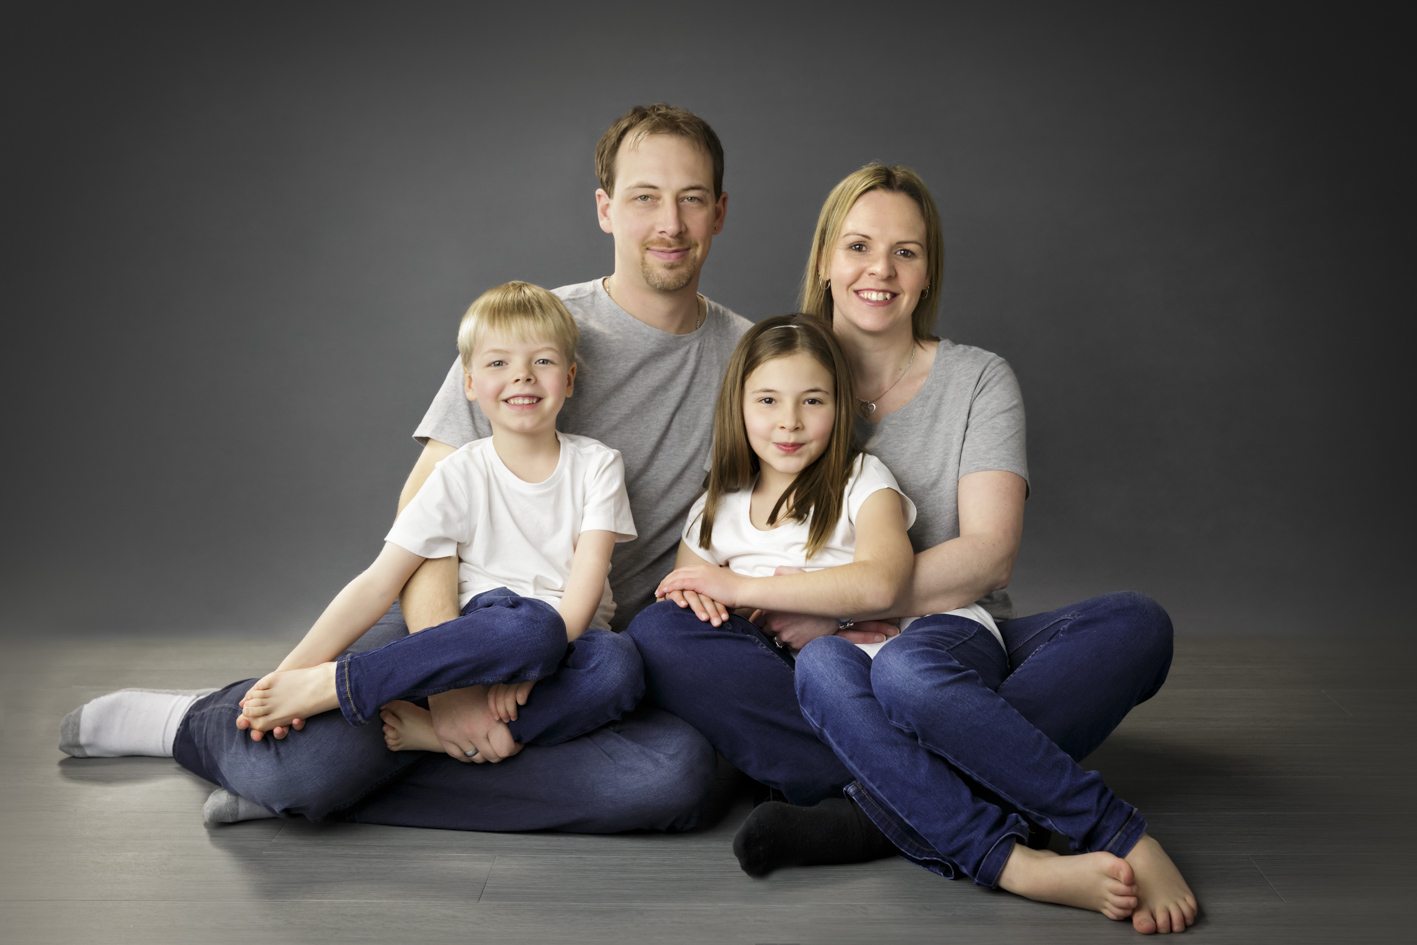 Ferntree gully family photographer